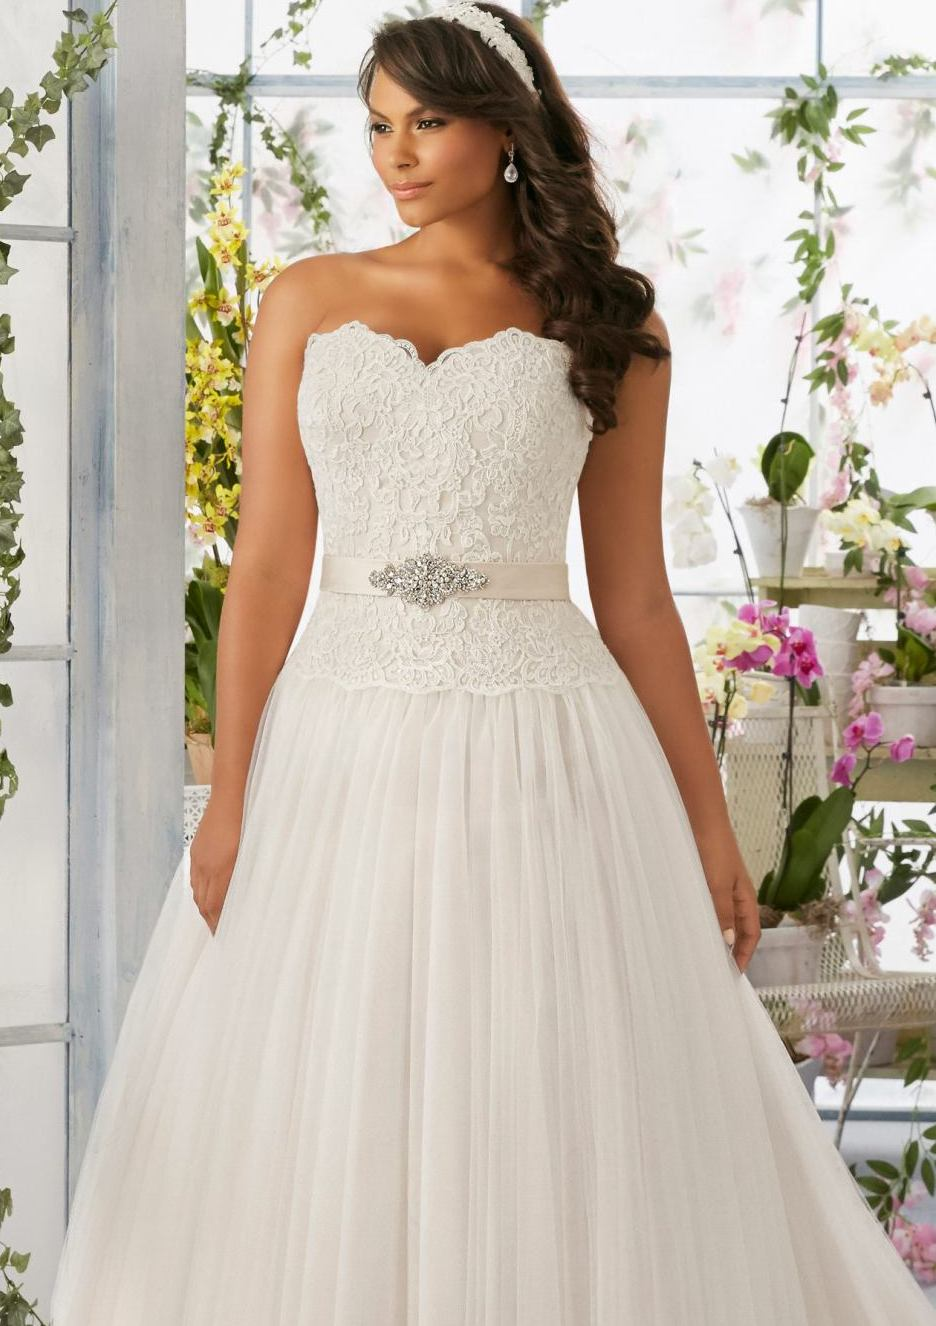 Awesome halloween themed wedding dresses crest princess for Halloween wedding dresses plus size